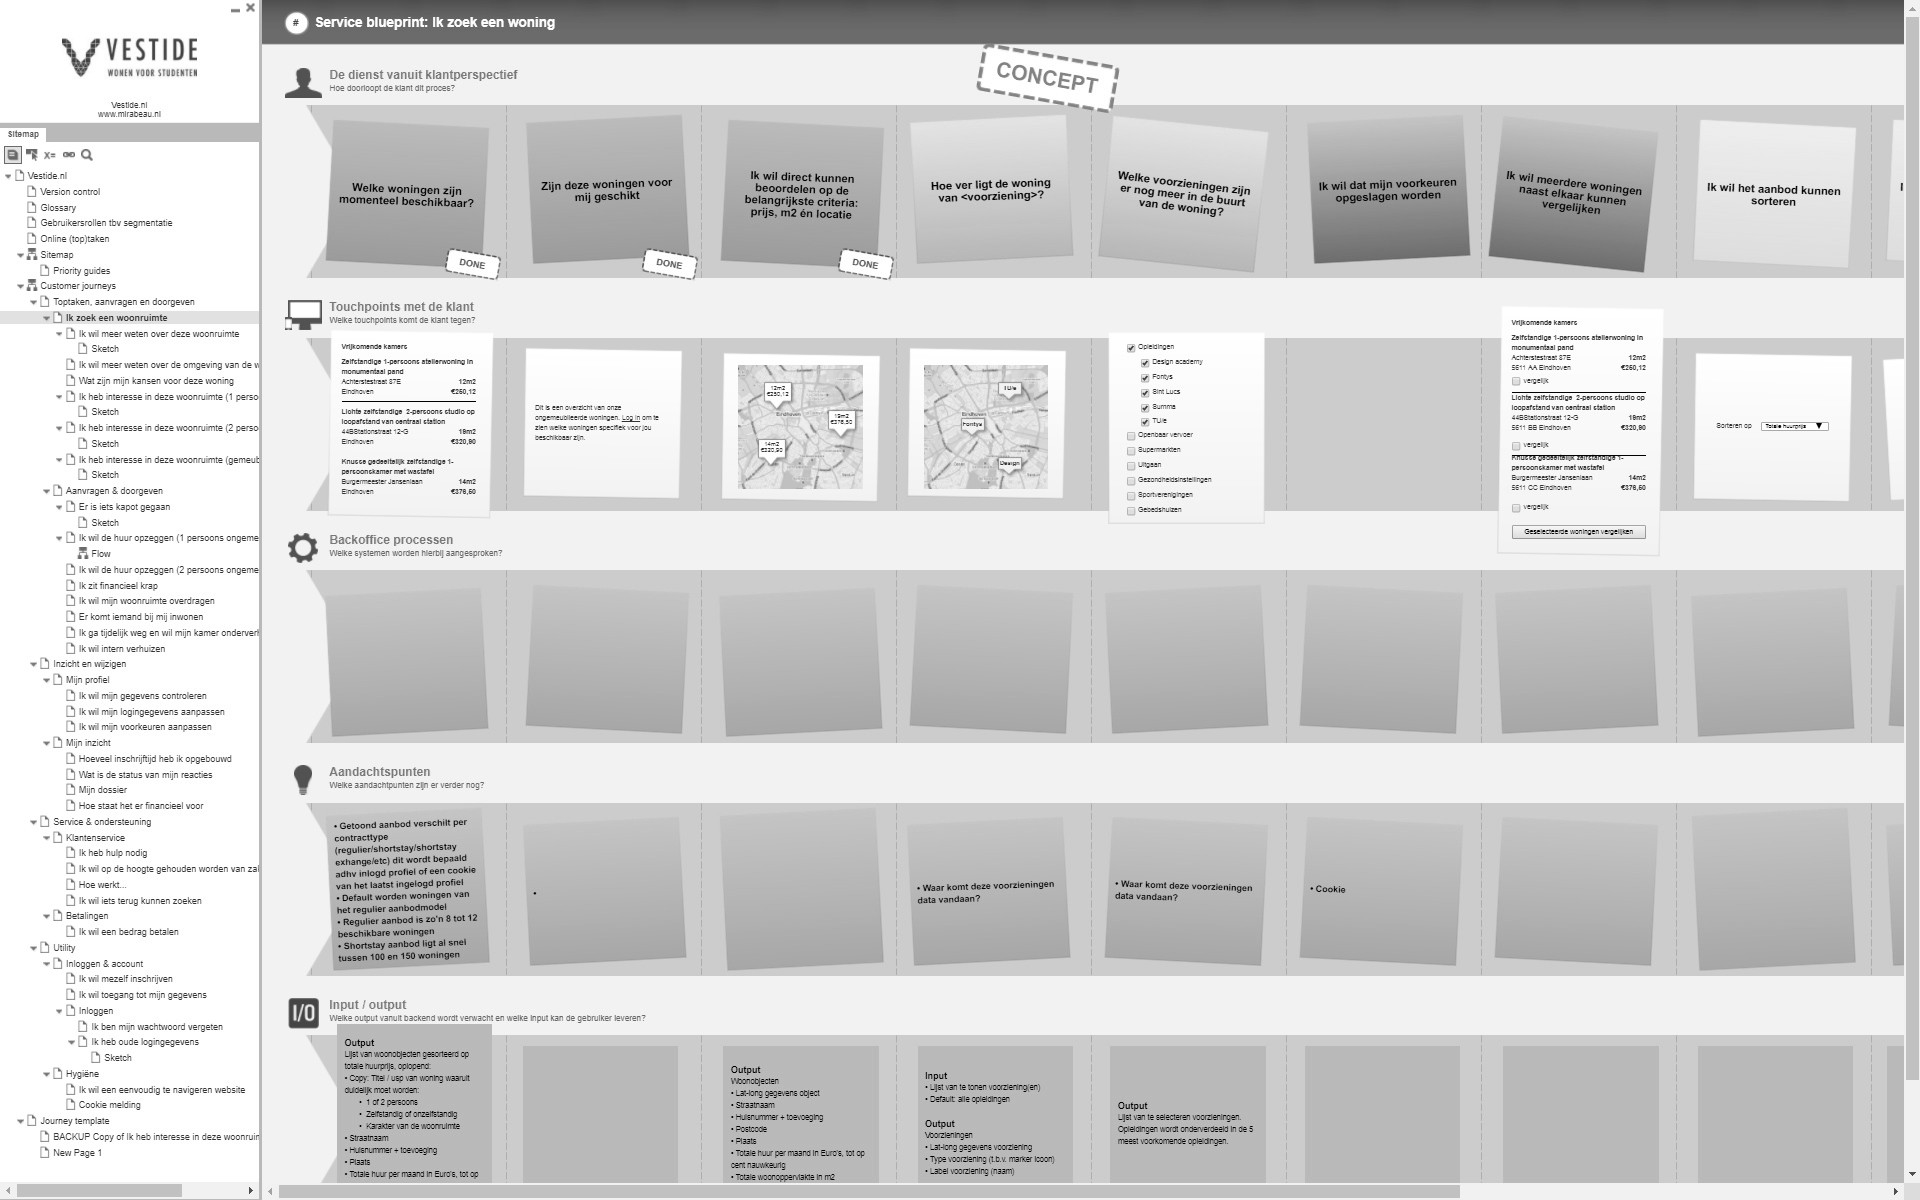 Service blueprinting mirabeau na snapshot of a service blueprint about the journey of a house hunter for vestide malvernweather Images